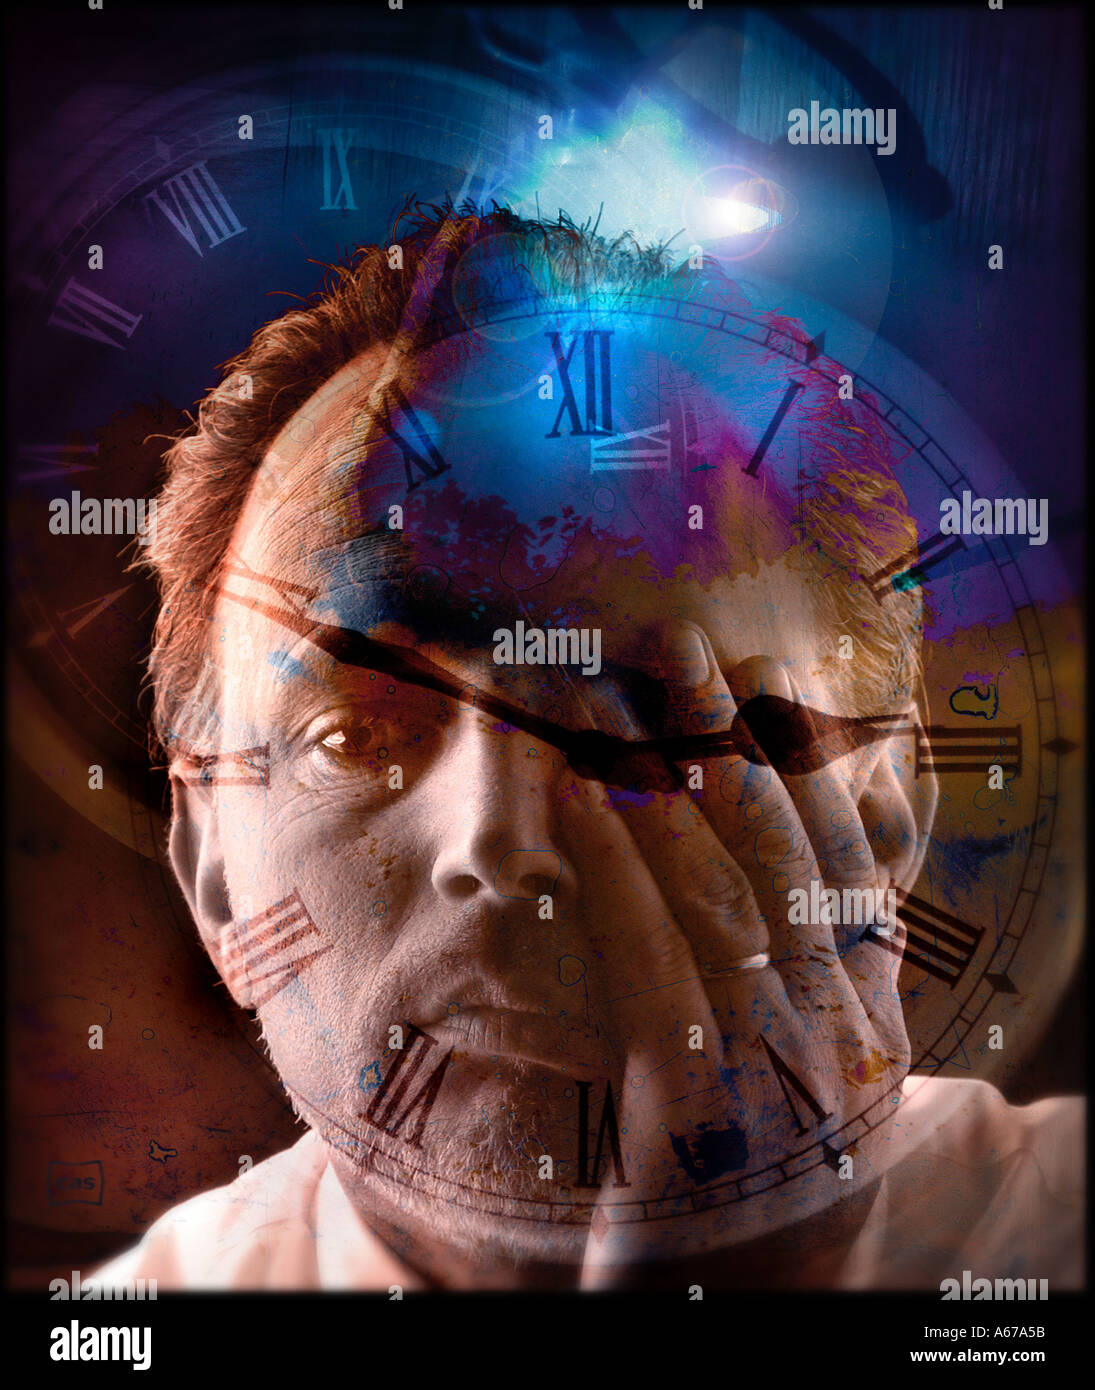 Time change Man rubbing eye with clock face and dark sky in collage time concept - Stock Image